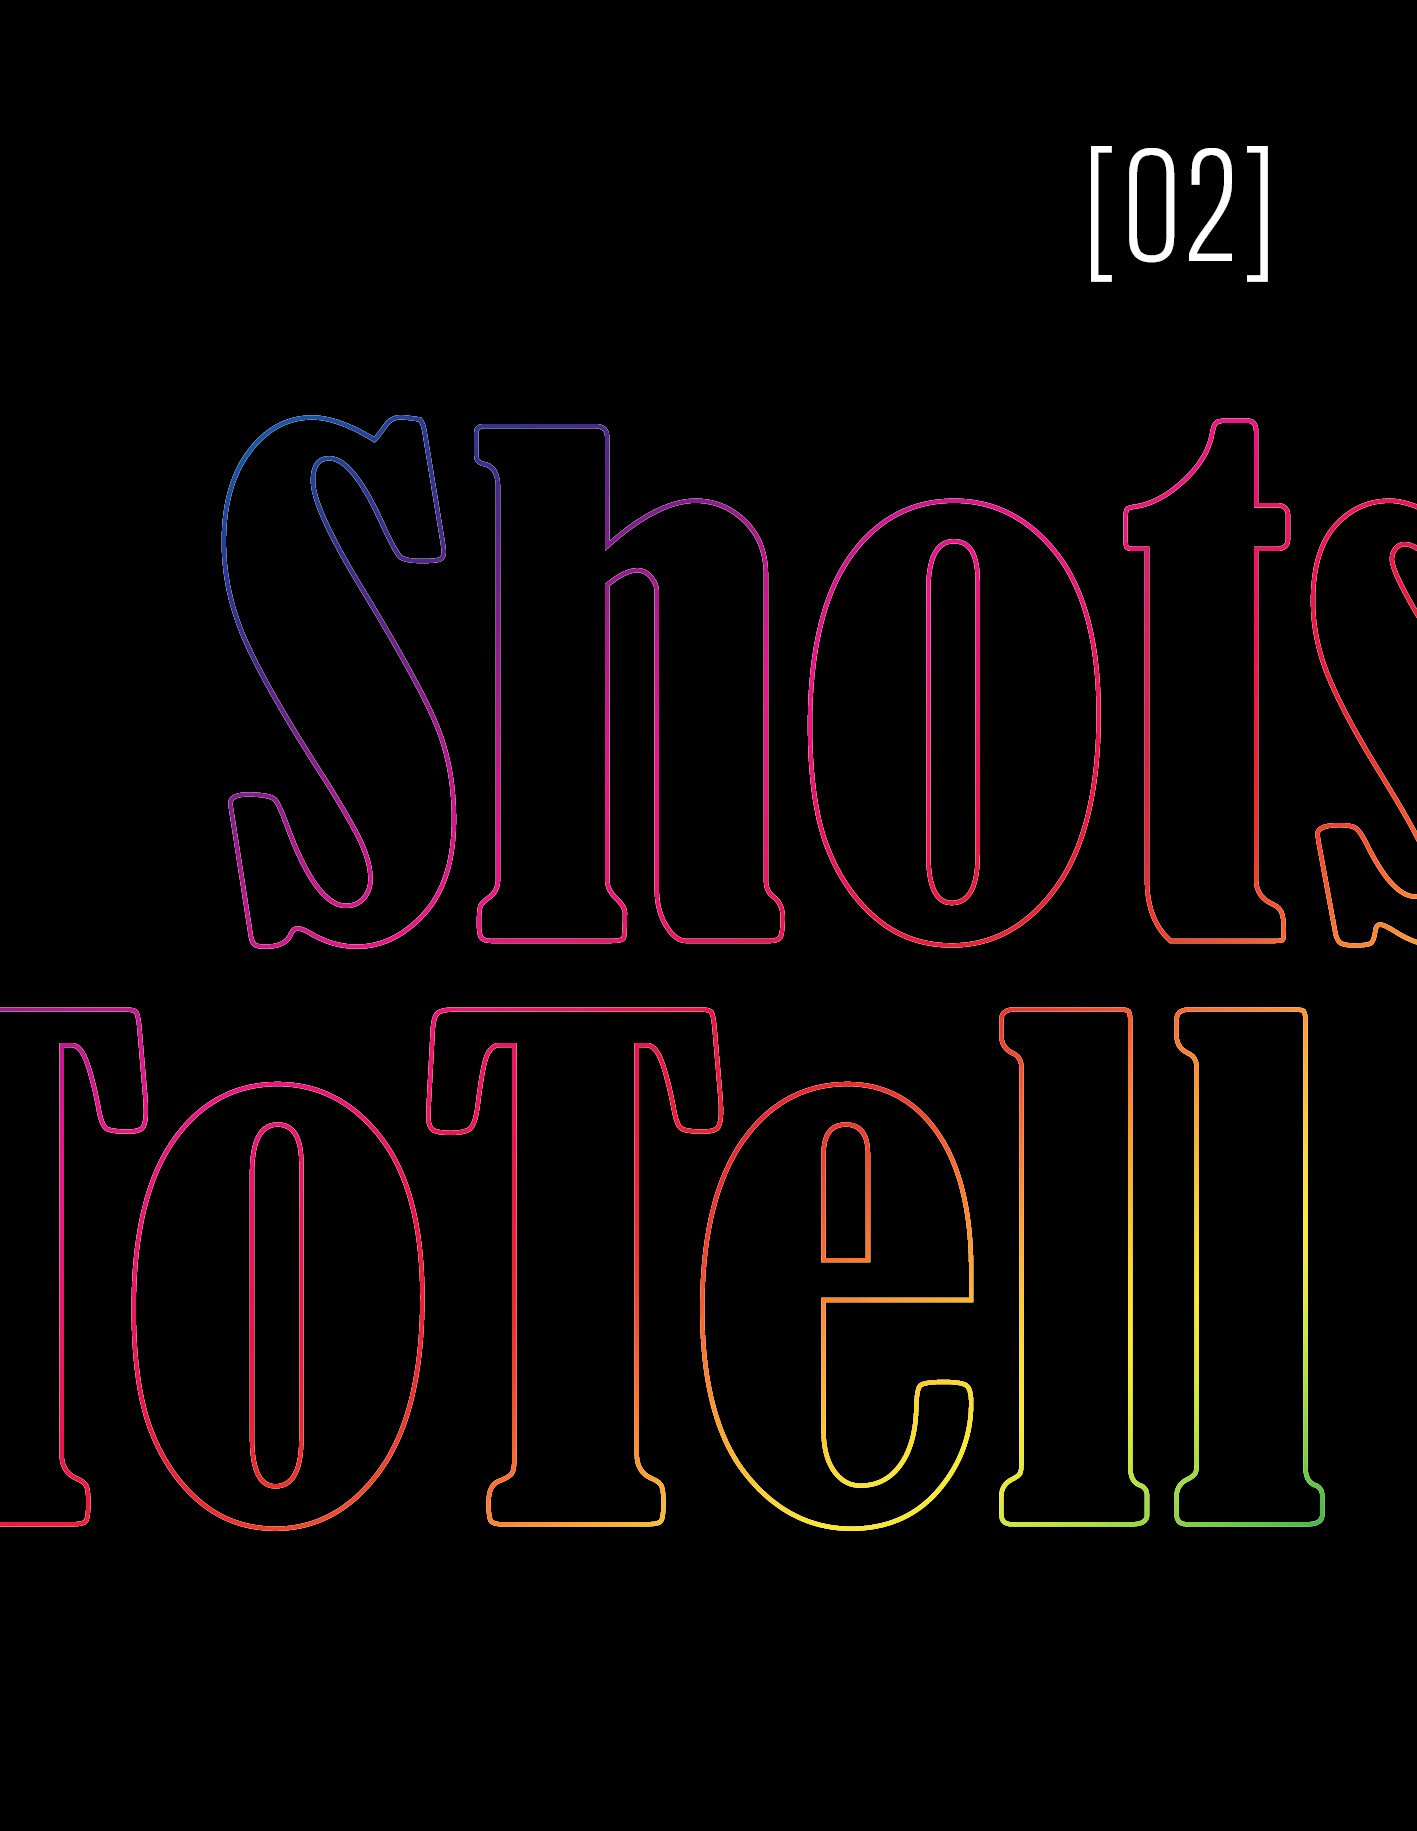 shots to tell-02 cover - maggio